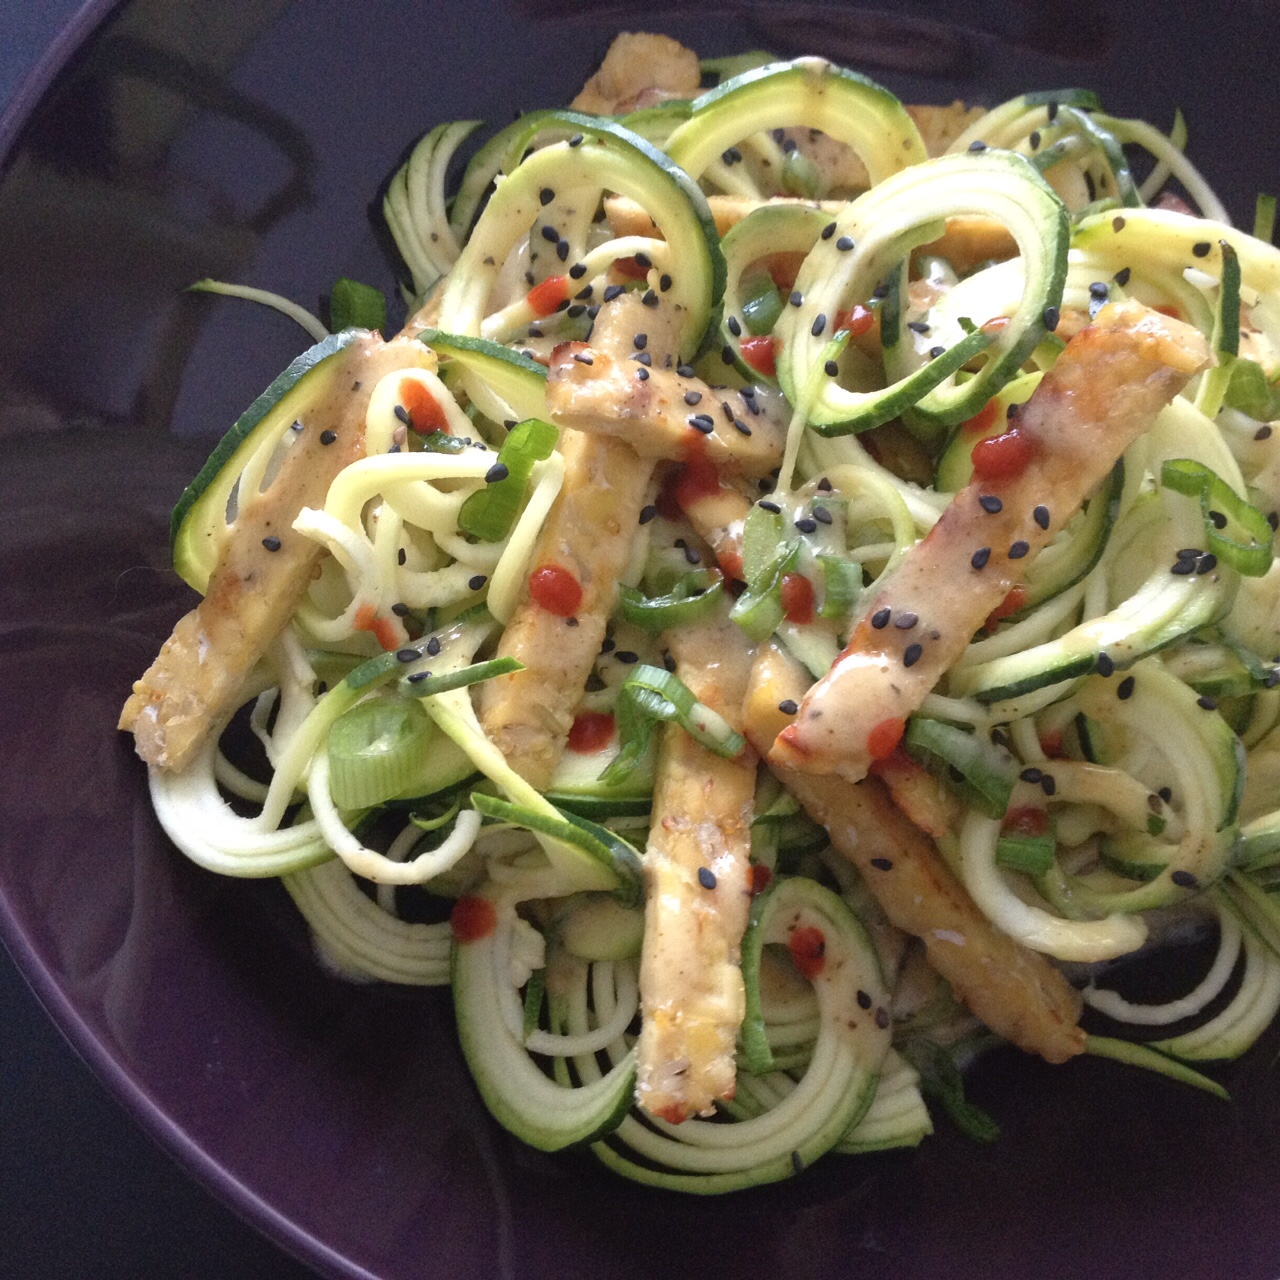 Zucchini noodles with tempeh and lemon tahini dressing